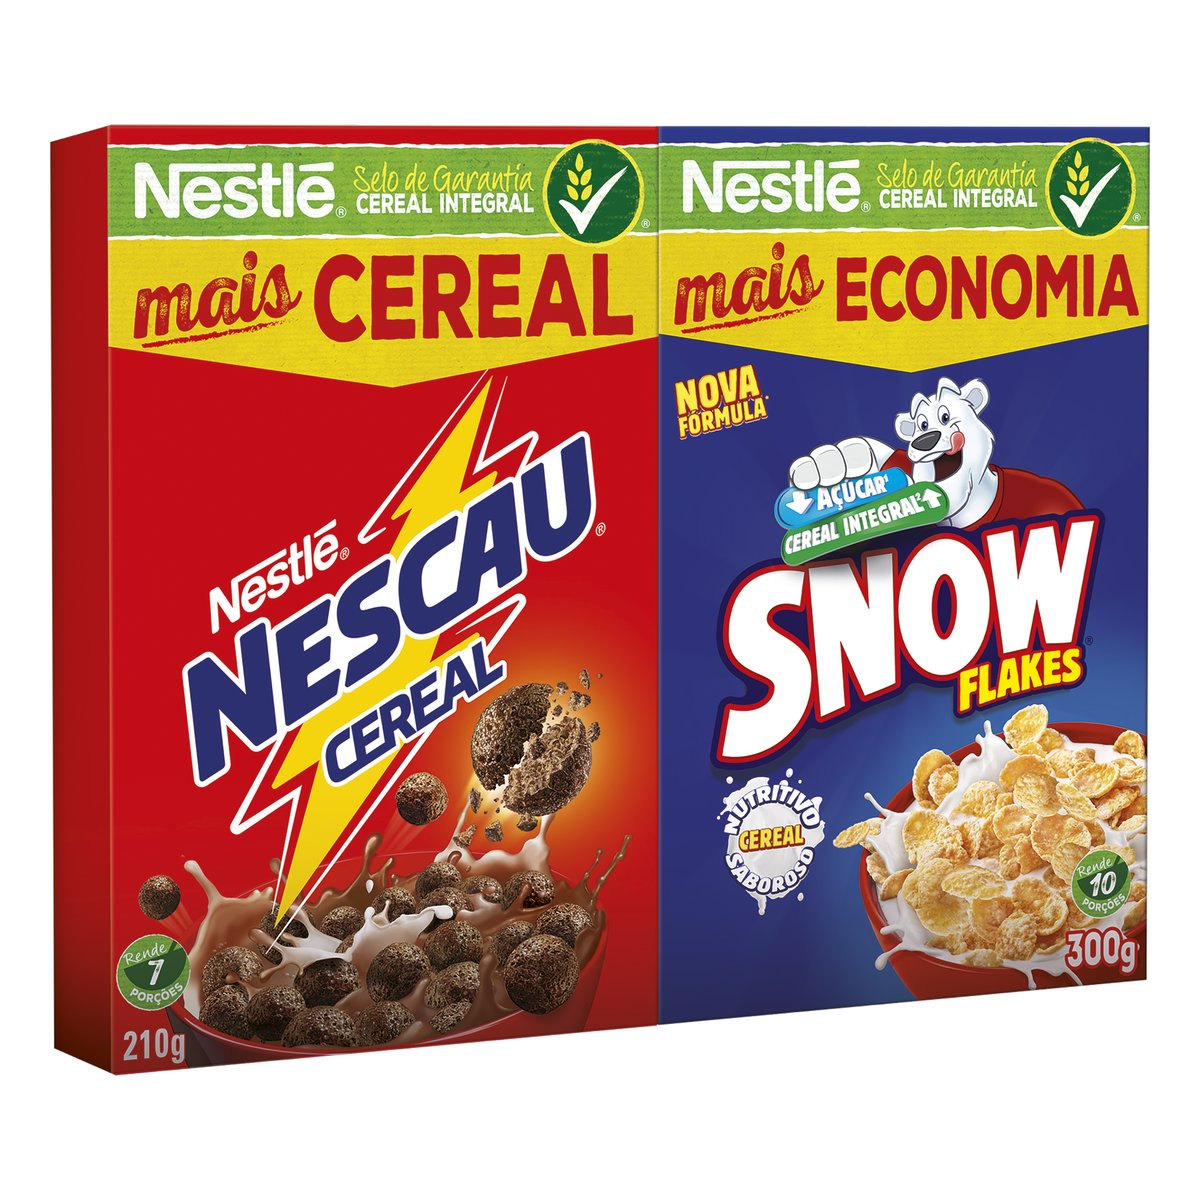 KIT MATINAL CEREAL NESCAU 210g + SNOW FLAKES 300g